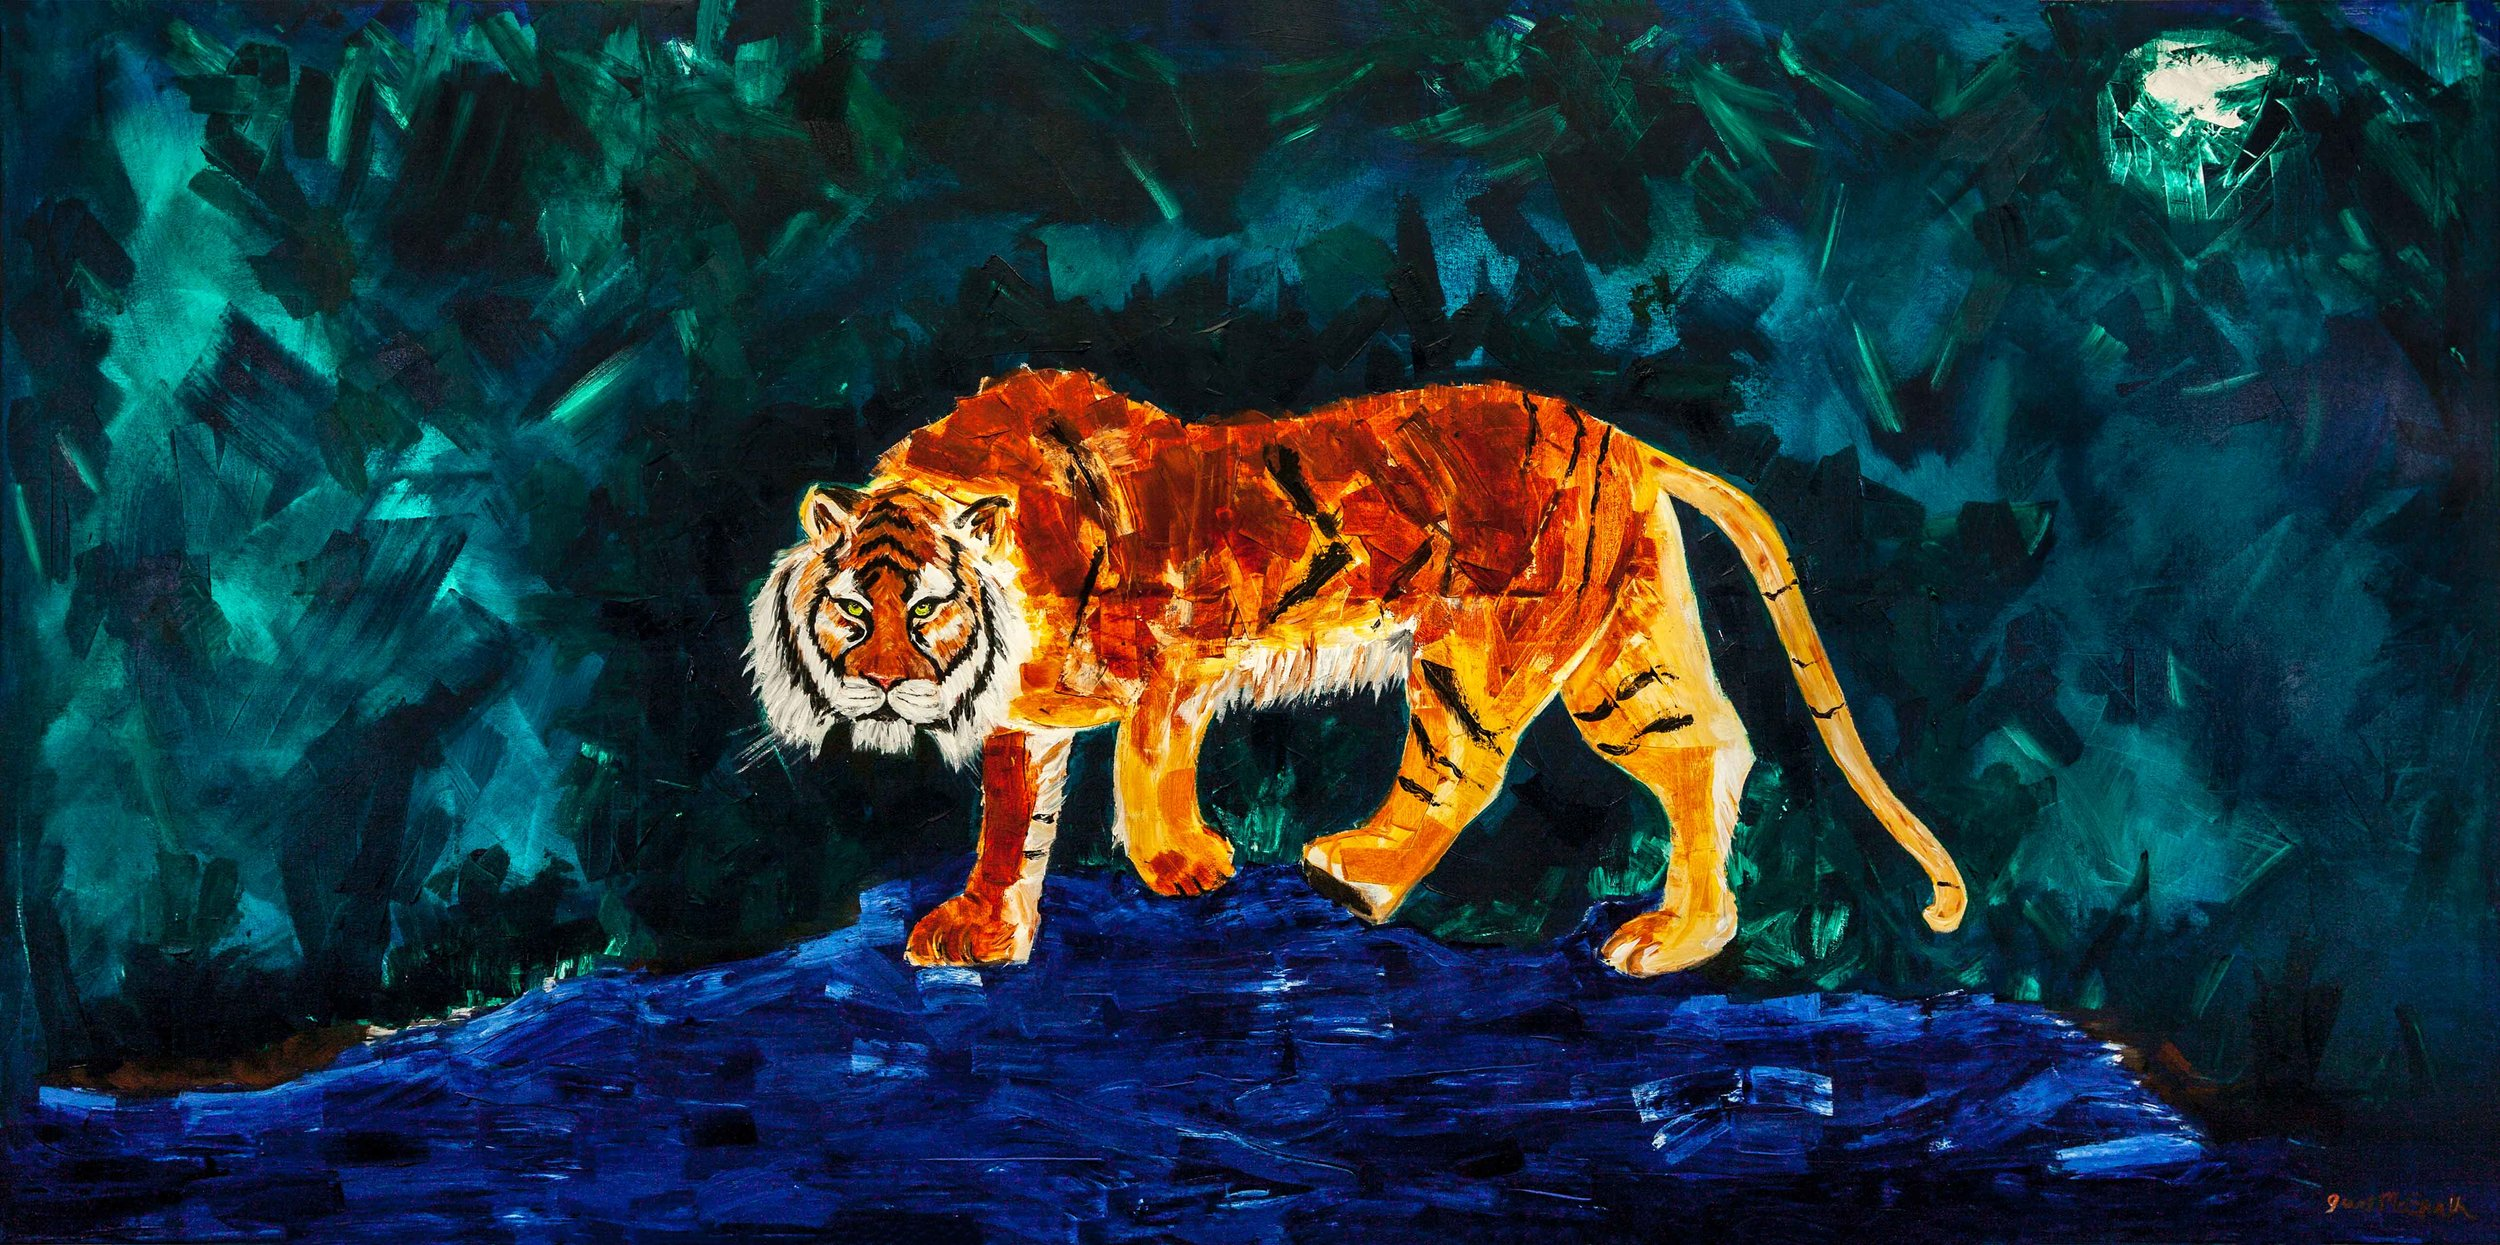 Tale of the Tiger_48x96 in.jpg